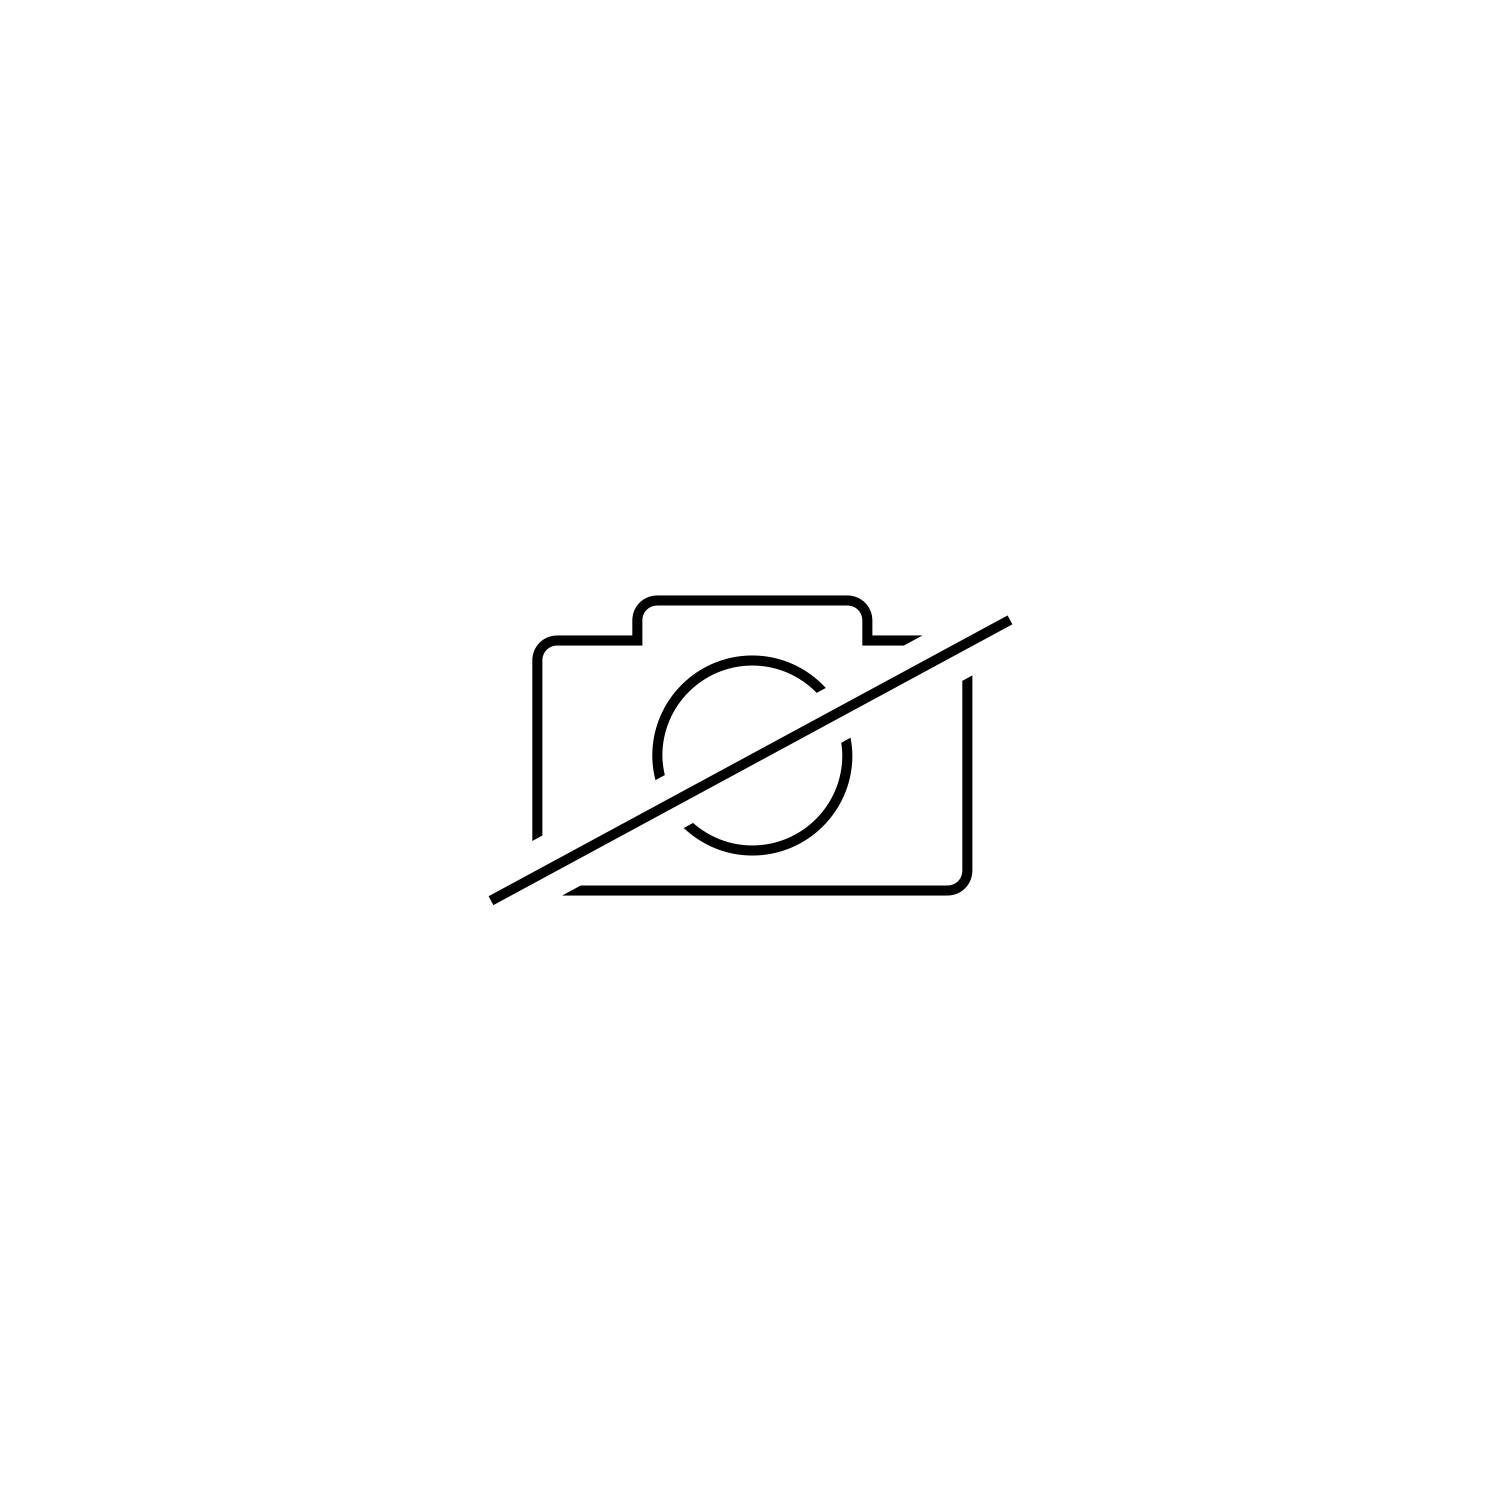 quattro T-Shirt, Mens, Light grey, M